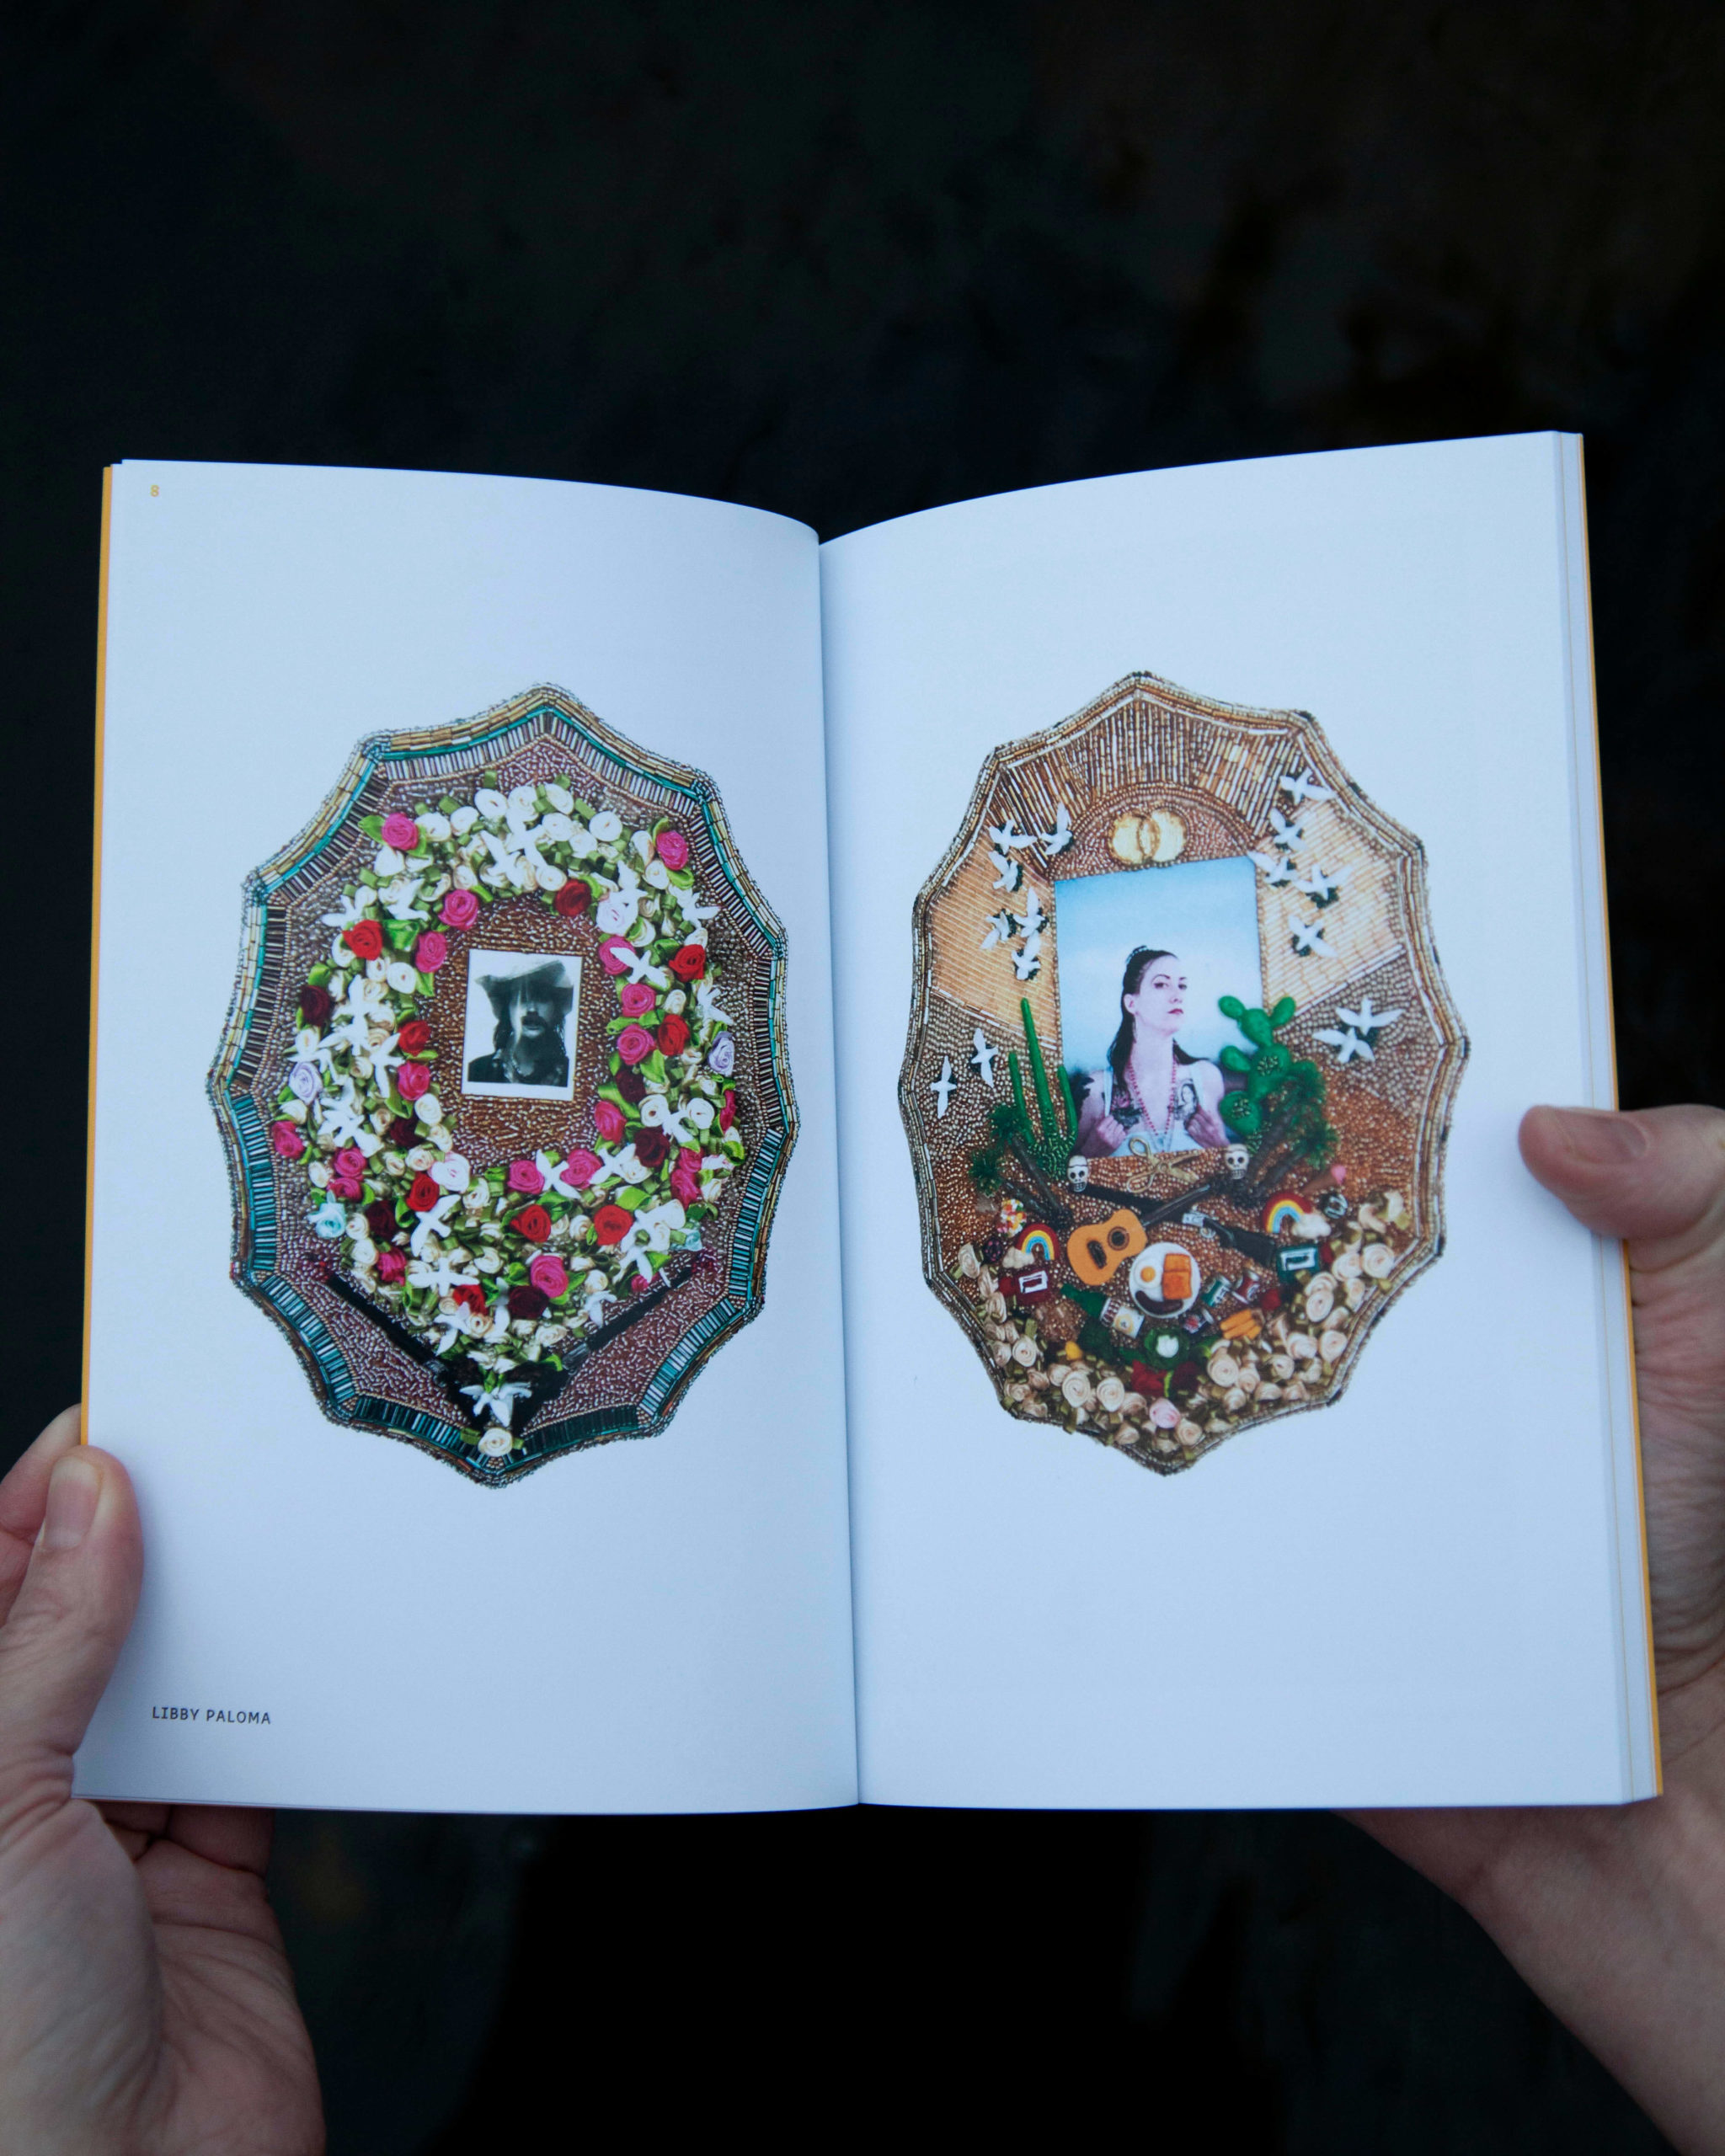 WMN Issue 1 Seasons of a DykeSpread with two photographs in heavily decorated oval frames